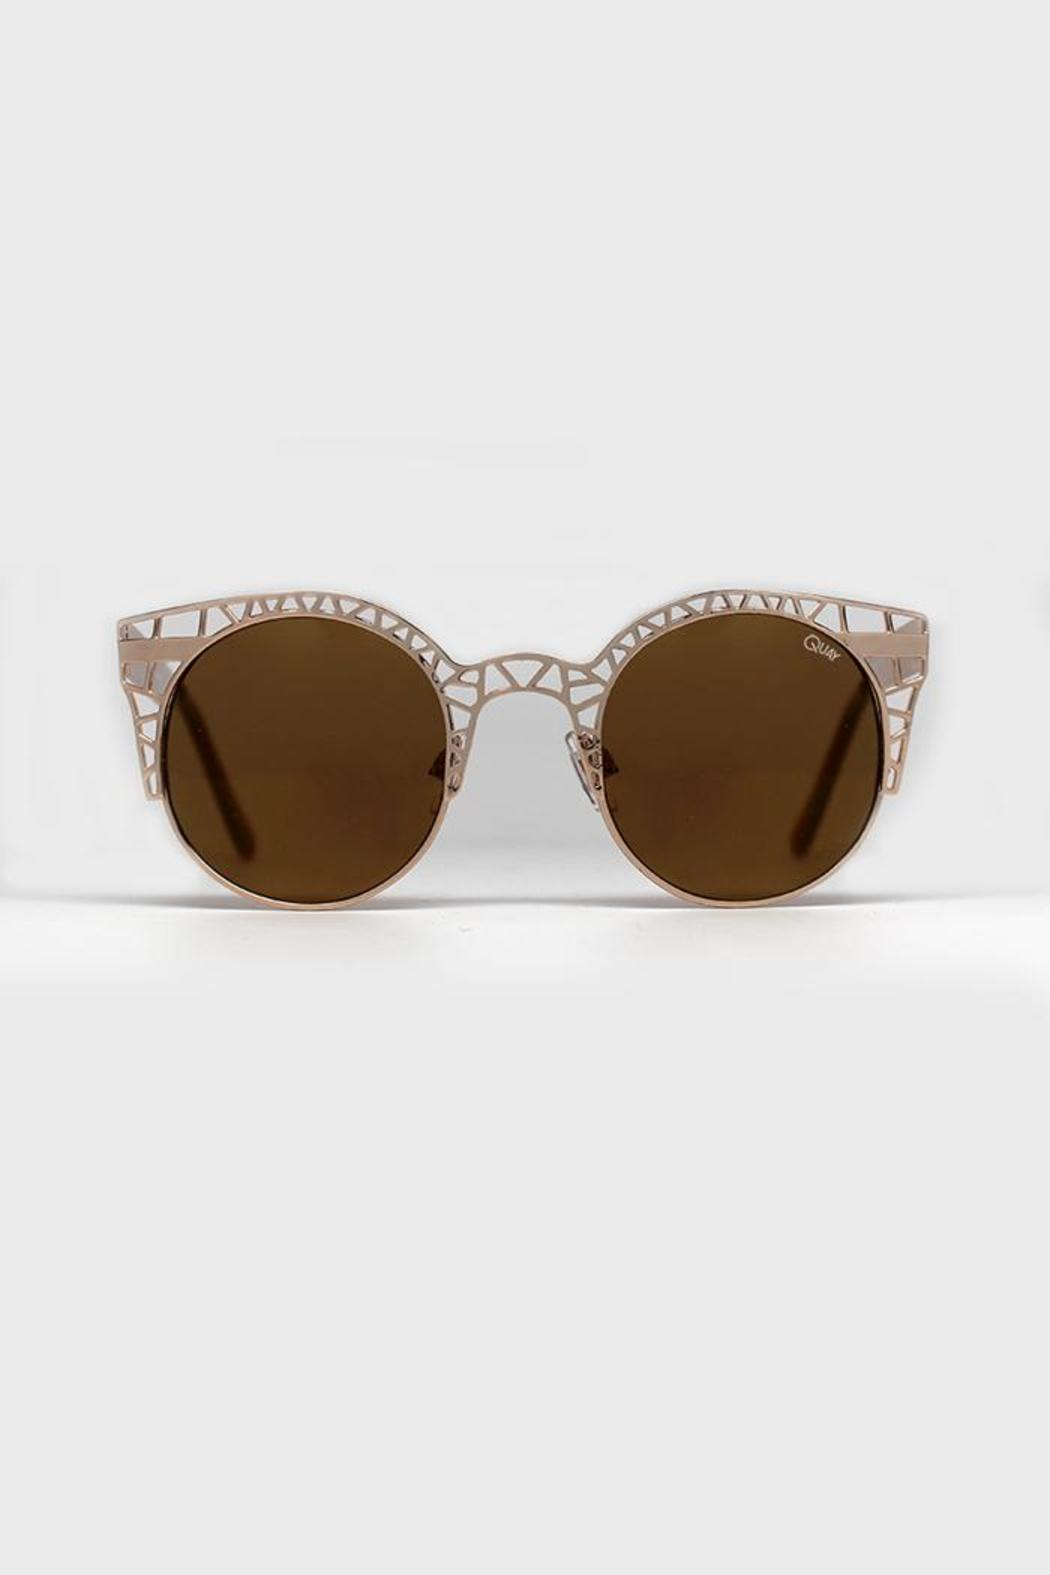 afdaad7e45 Quay Fleur Sunglasses from New Jersey by Pretty Edgy — Shoptiques